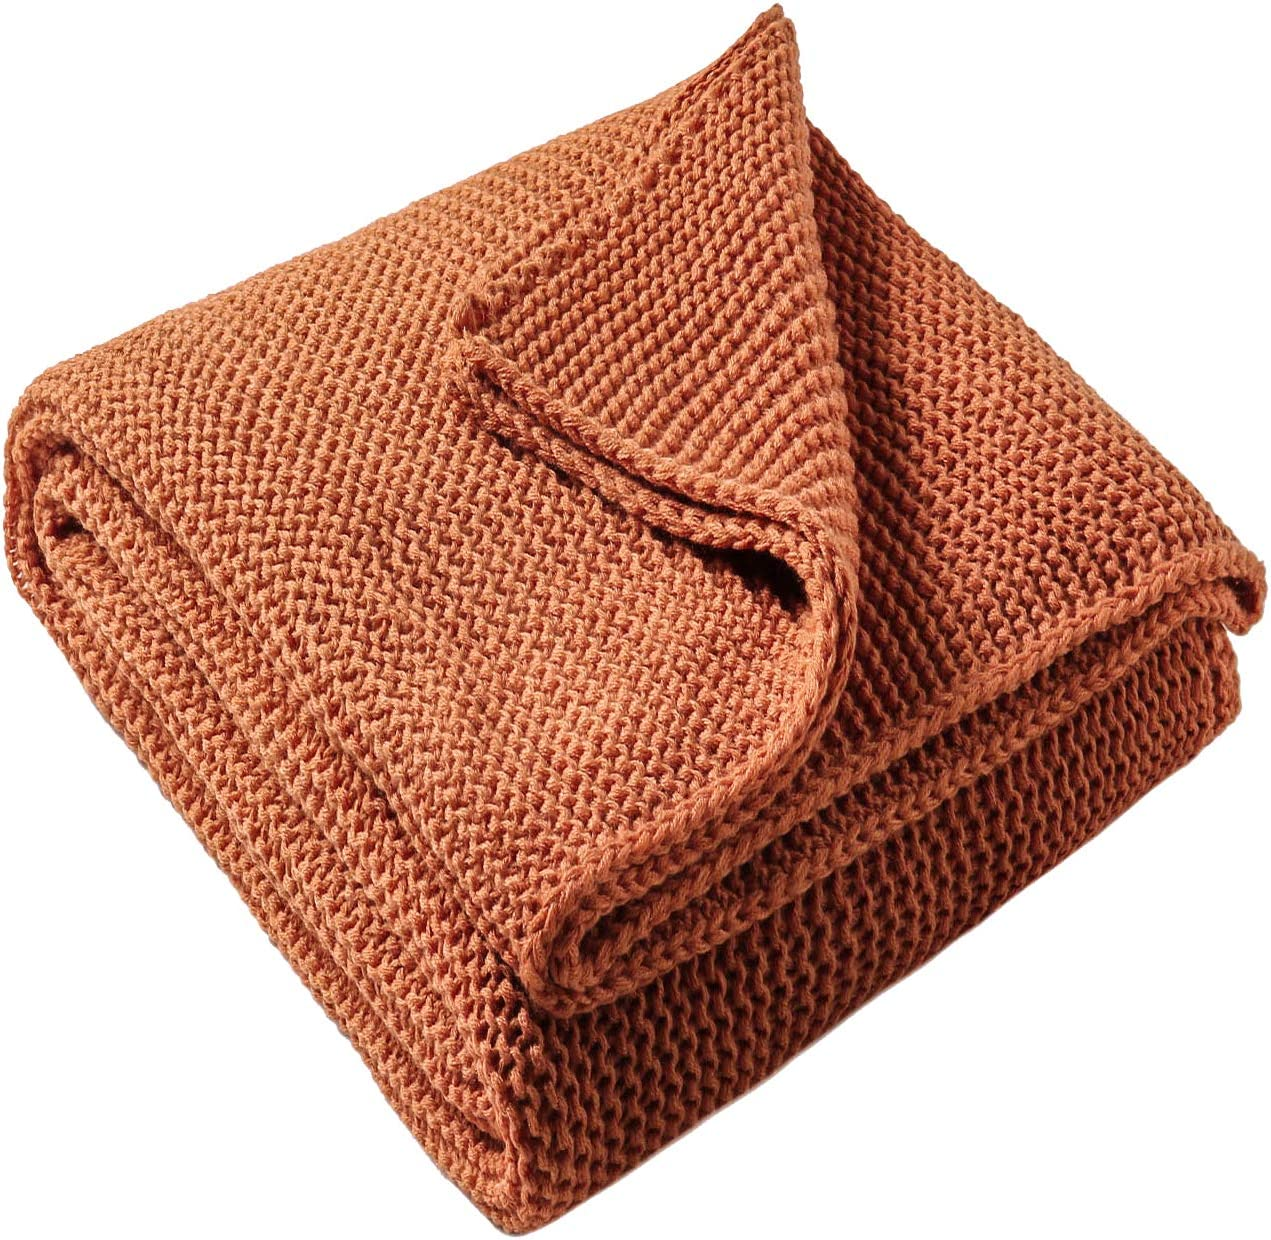 "TREELY Knitted Throw Blanket Rust Orange Knit Throw Blanket for Couch Sofa Beach Chair, 50"" x 60"""